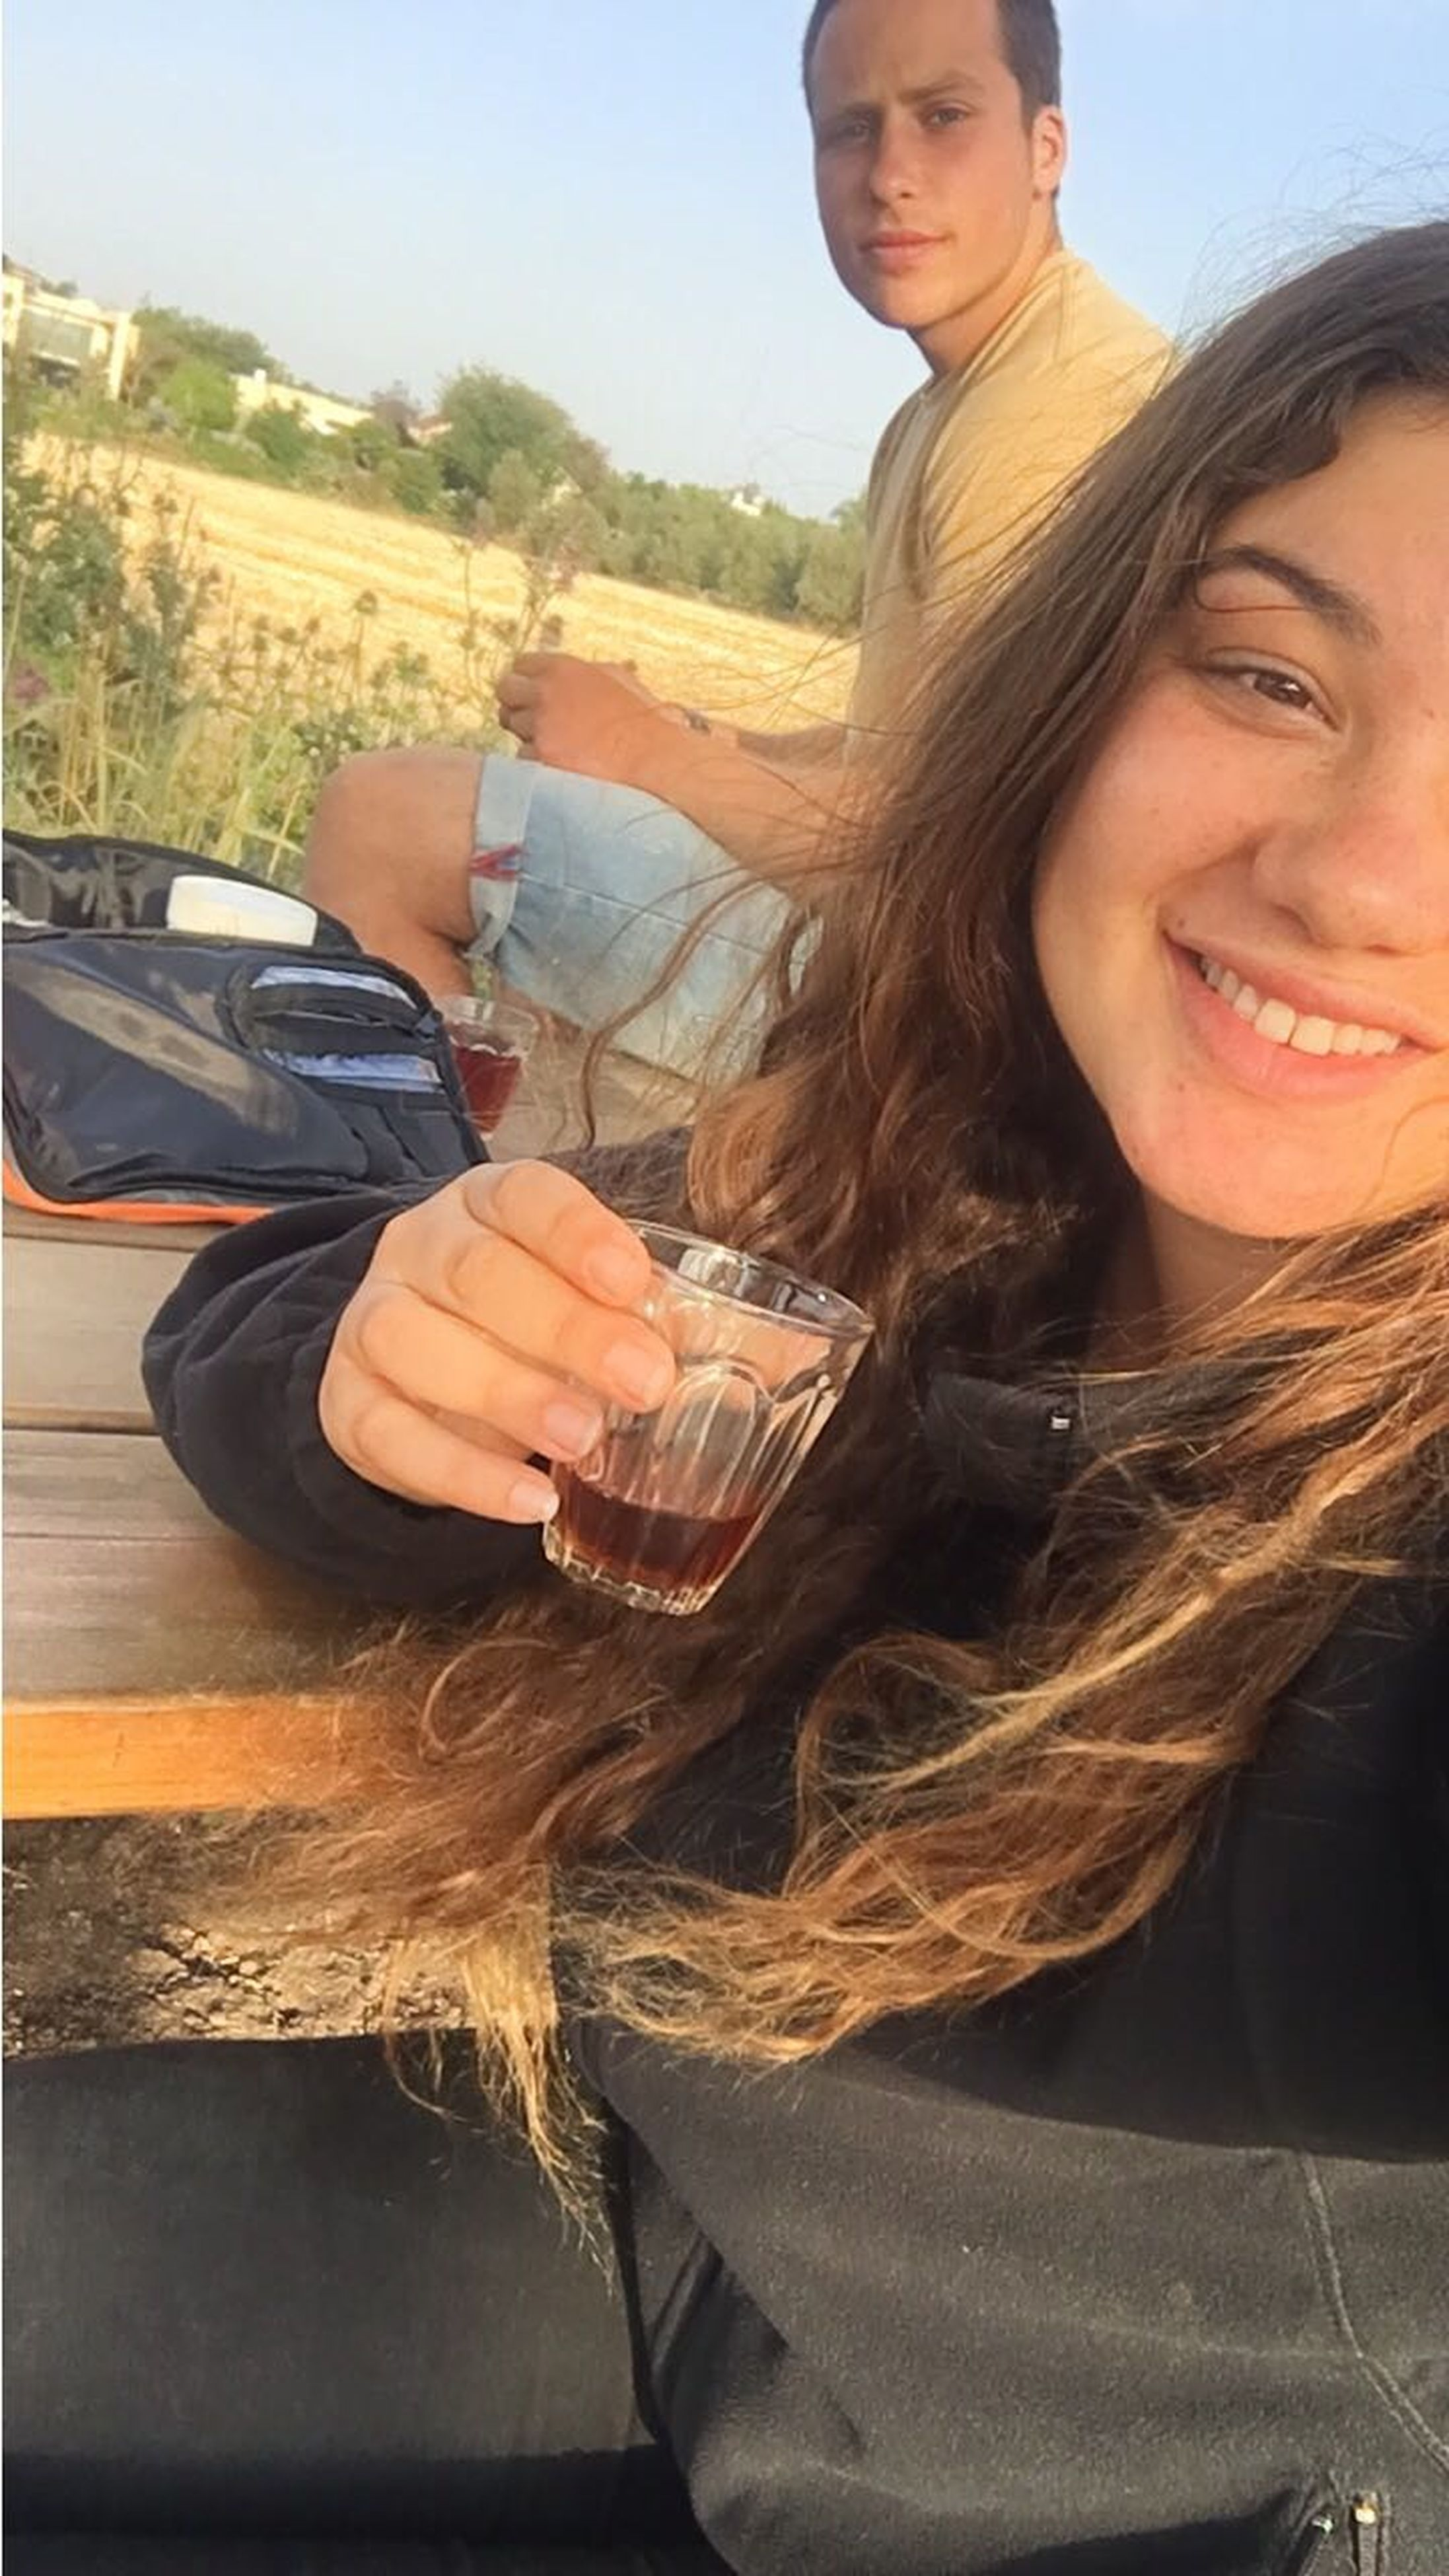 real people, drink, drinking, two people, looking at camera, front view, long hair, smiling, young women, food and drink, leisure activity, day, outdoors, portrait, togetherness, young adult, alcohol, lifestyles, happiness, close-up, cold temperature, friendship, warm clothing, nature, sky, people